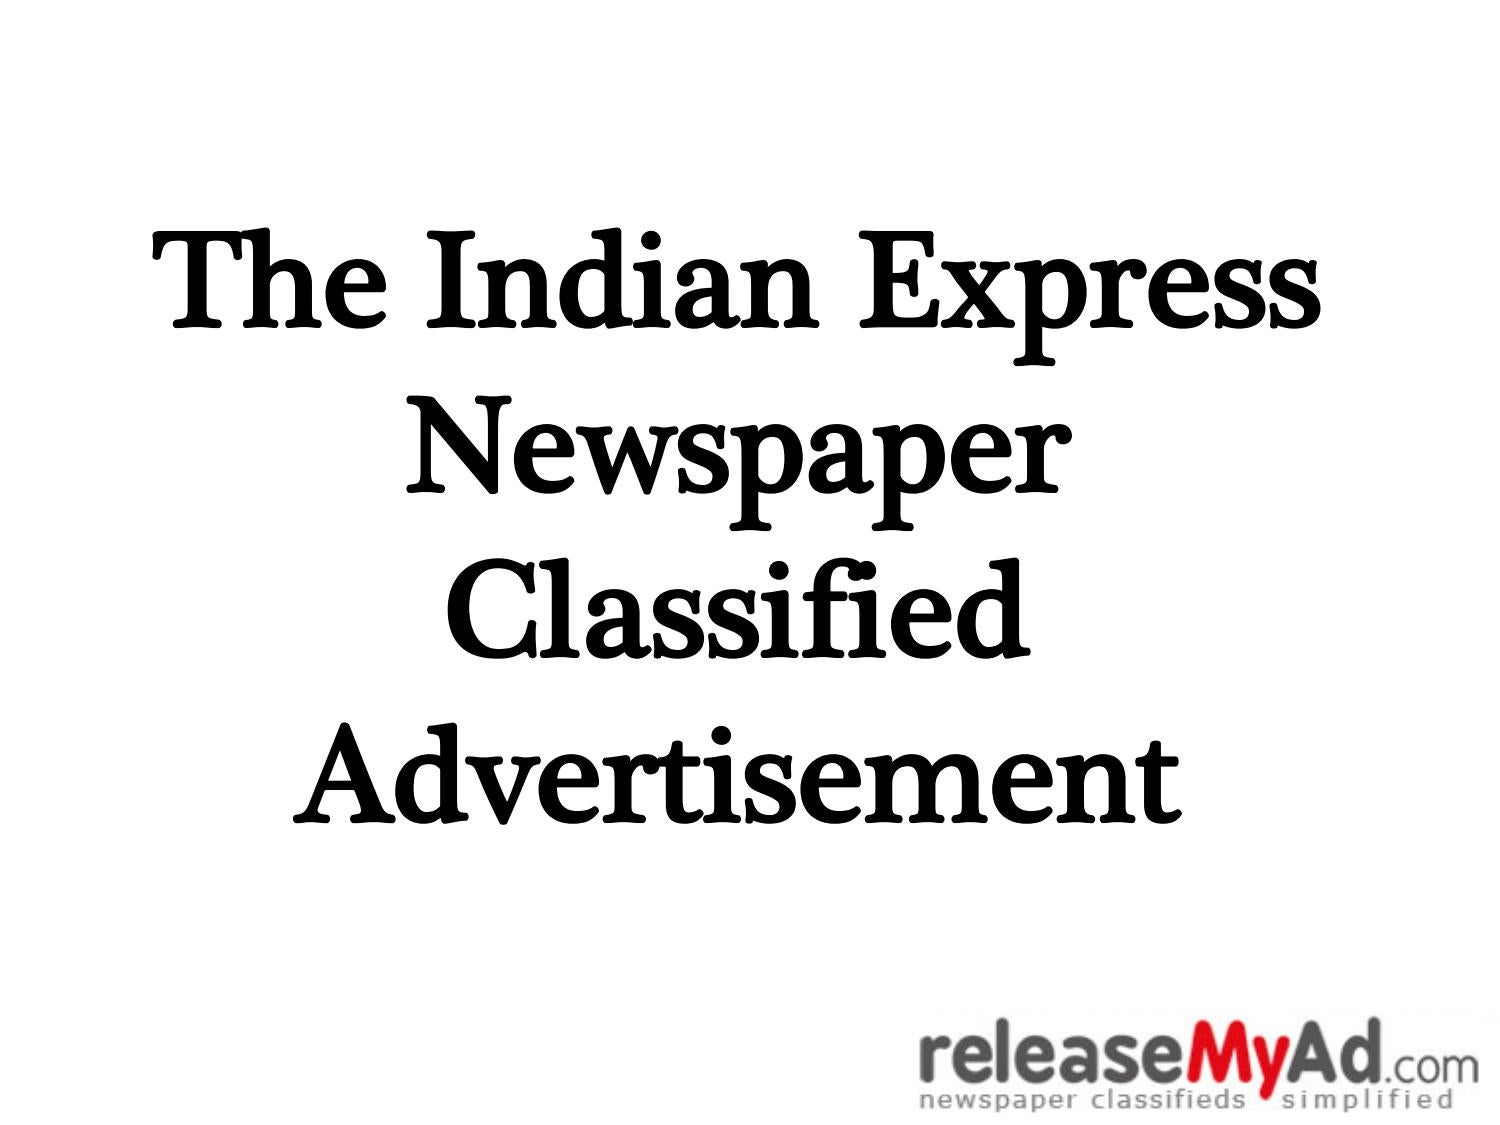 The Indian Express Newspaper Classified Advertisement by